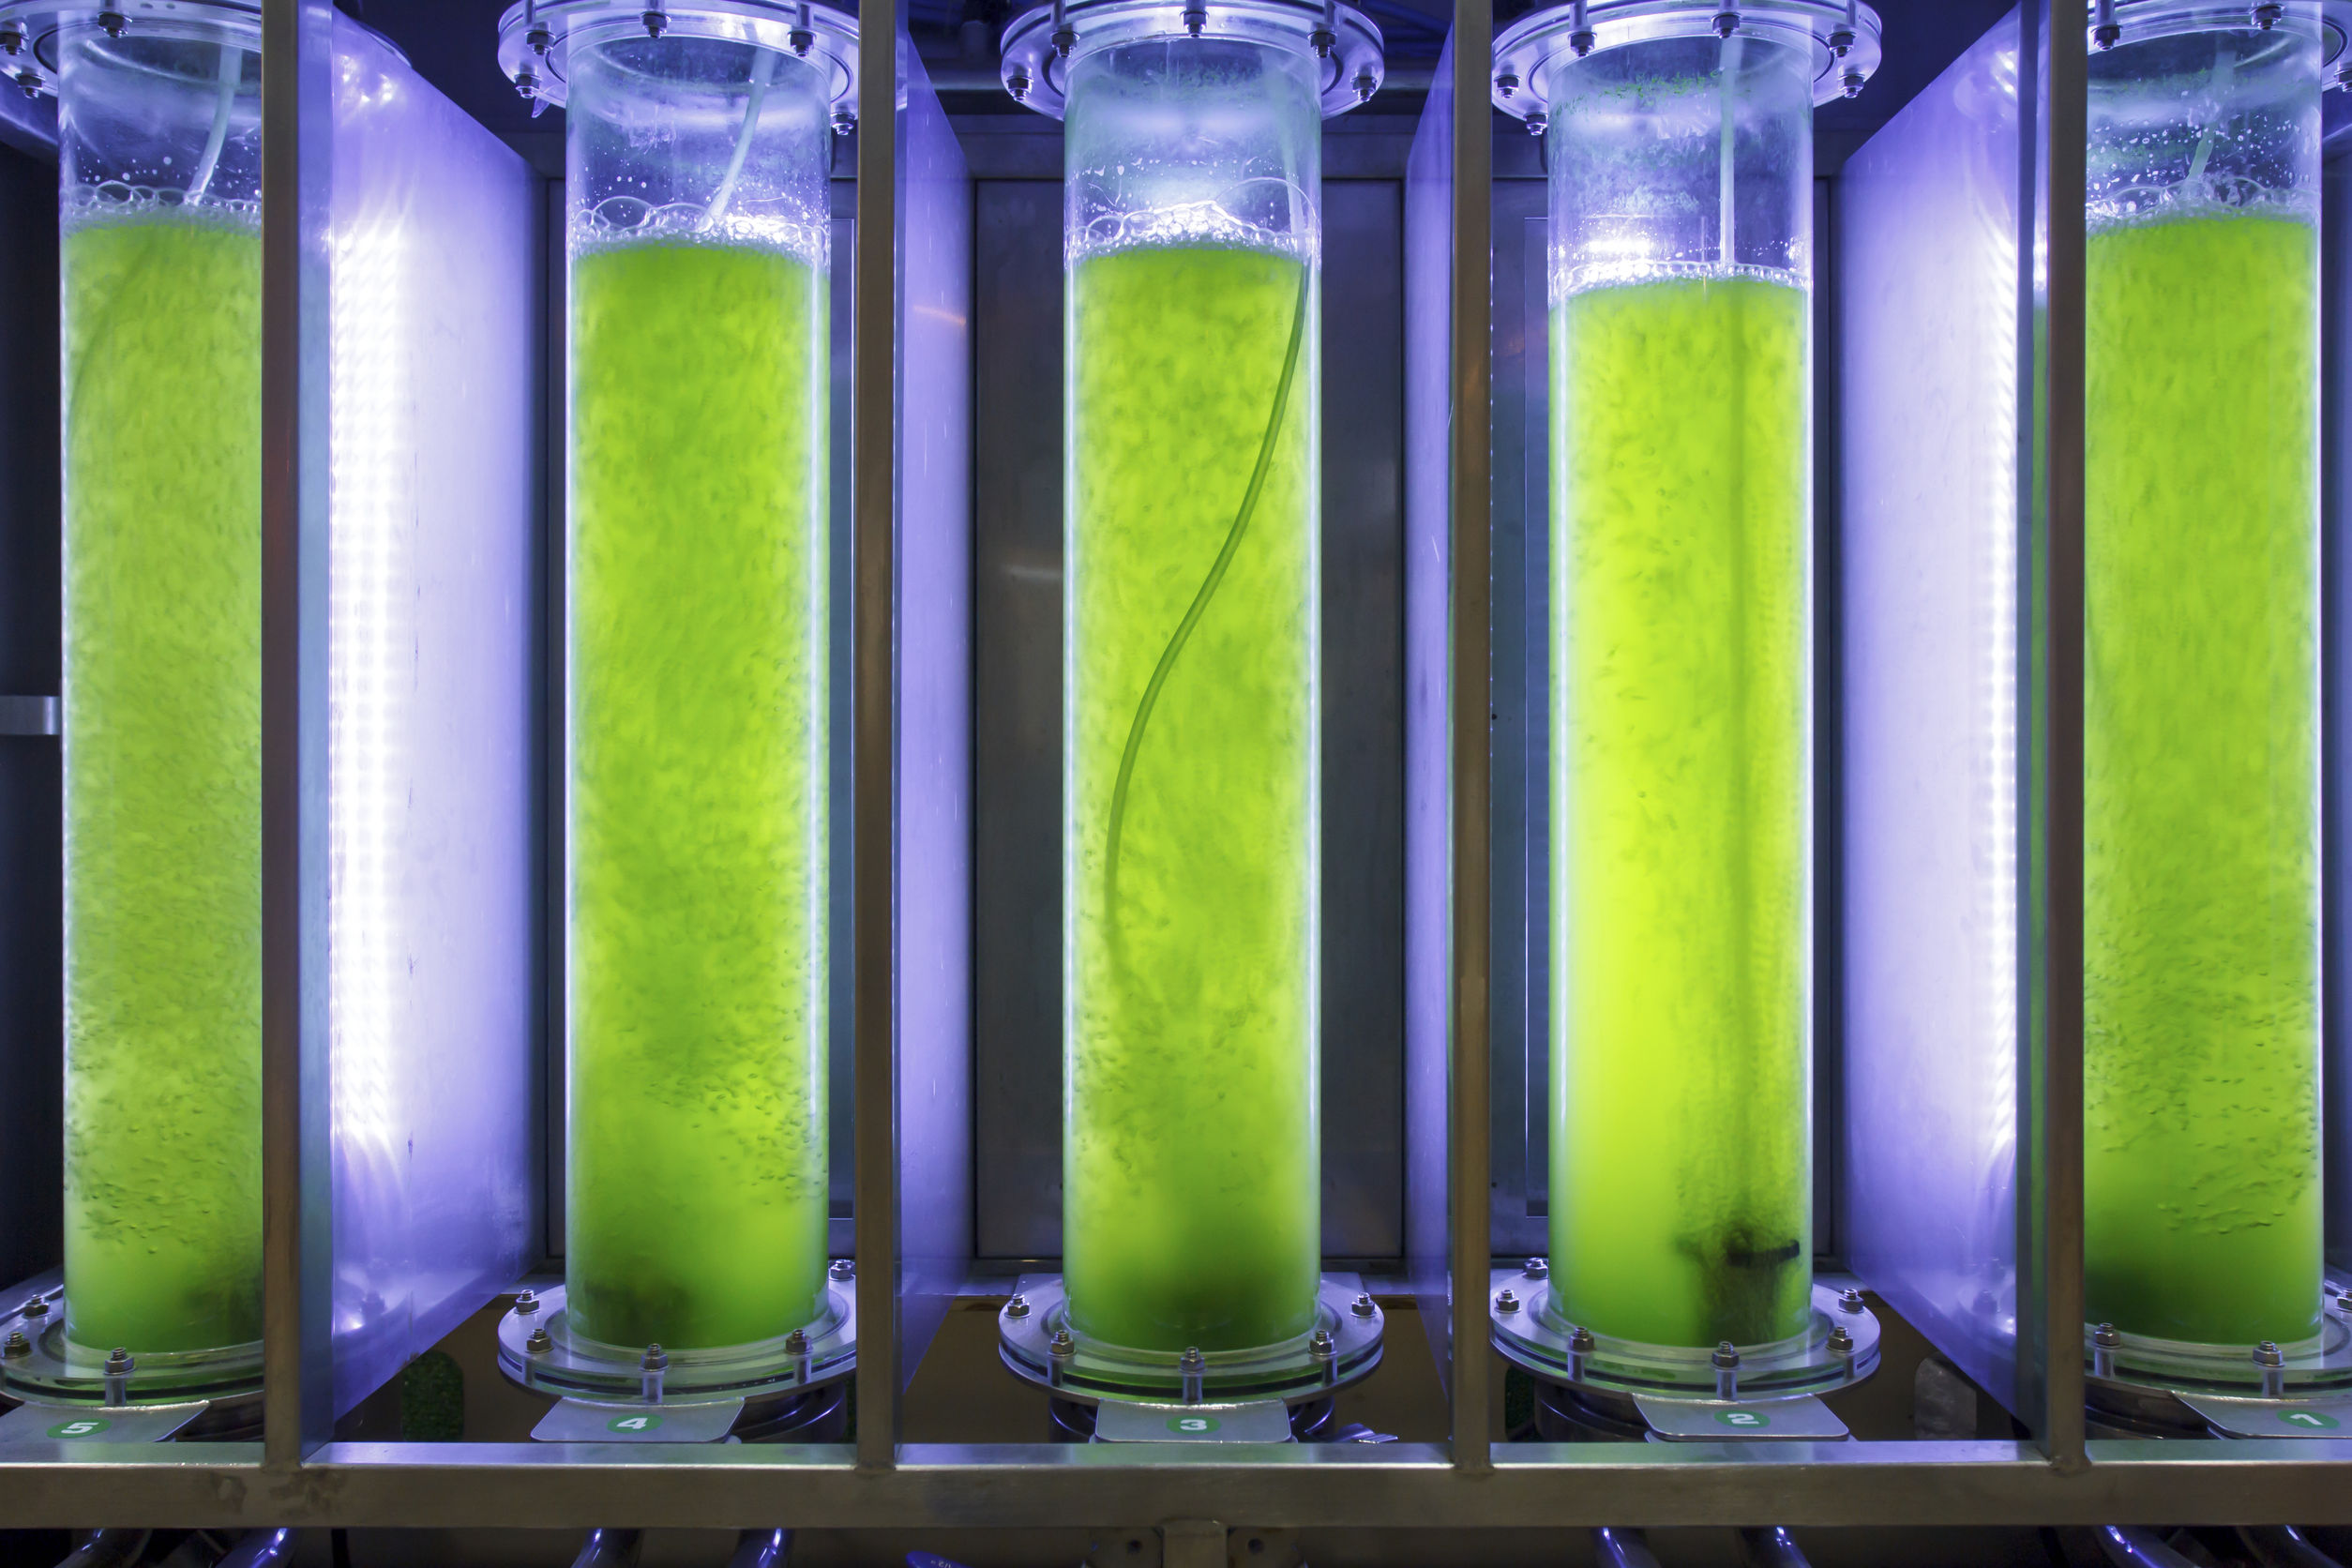 Phd thesis on algae production for bioenergy